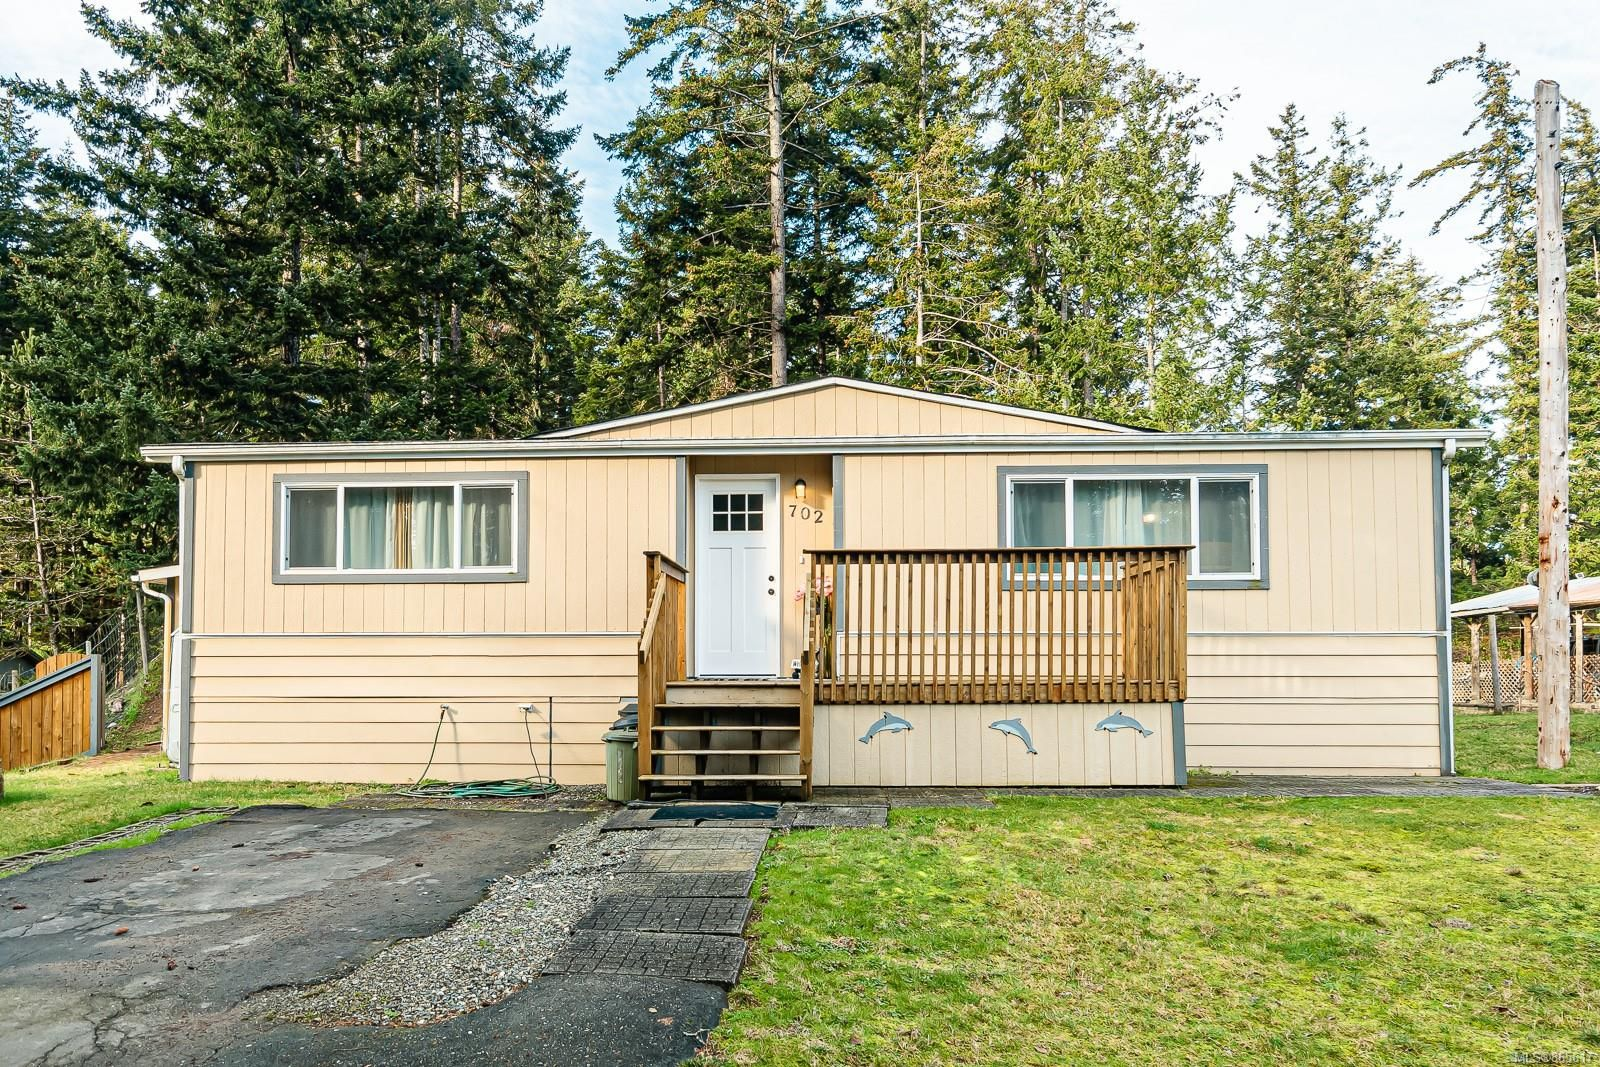 Main Photo: 702 Lazo Rd in : CV Comox Peninsula Manufactured Home for sale (Comox Valley)  : MLS®# 865617